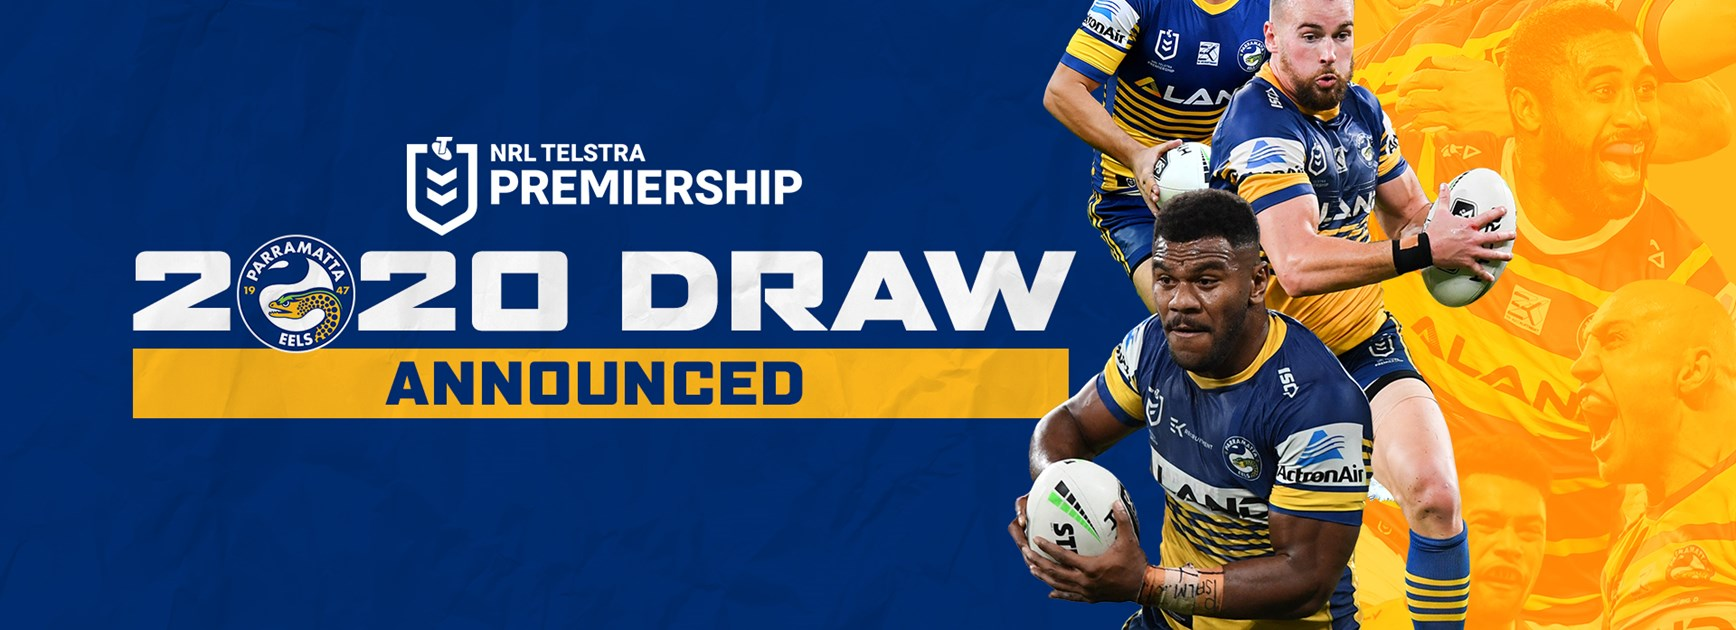 Full 2020 NRL Draw confirmed